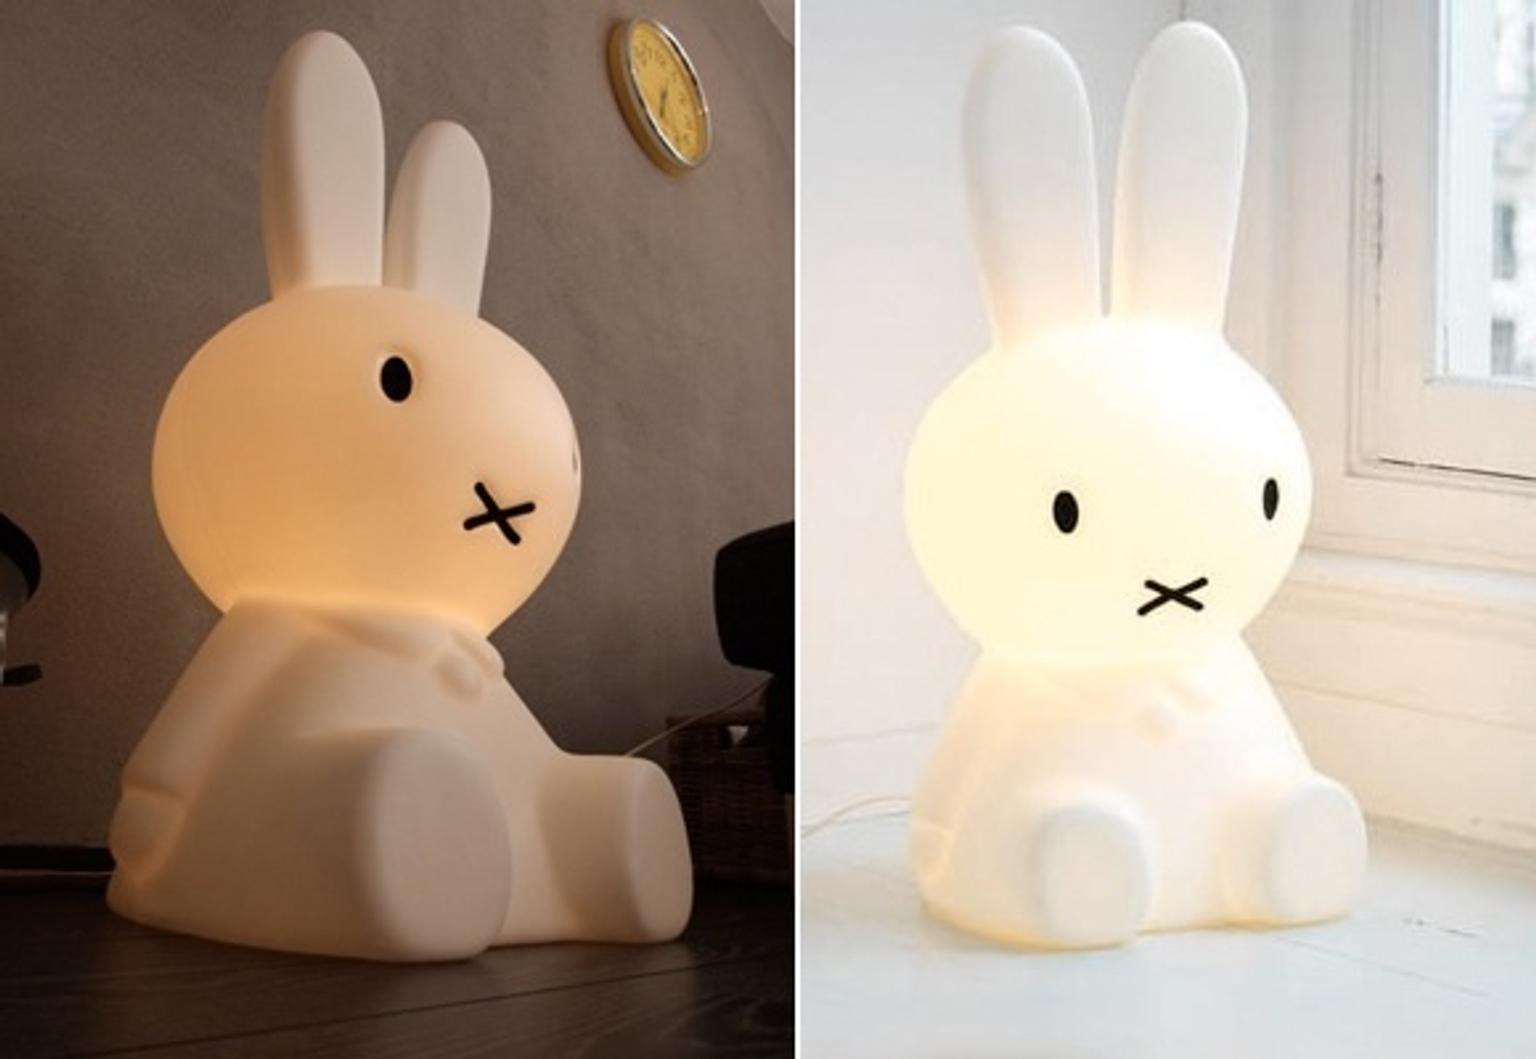 Miffy Lampe Von Mr Maria In 81477 Munchen For 130 For Sale Shpock